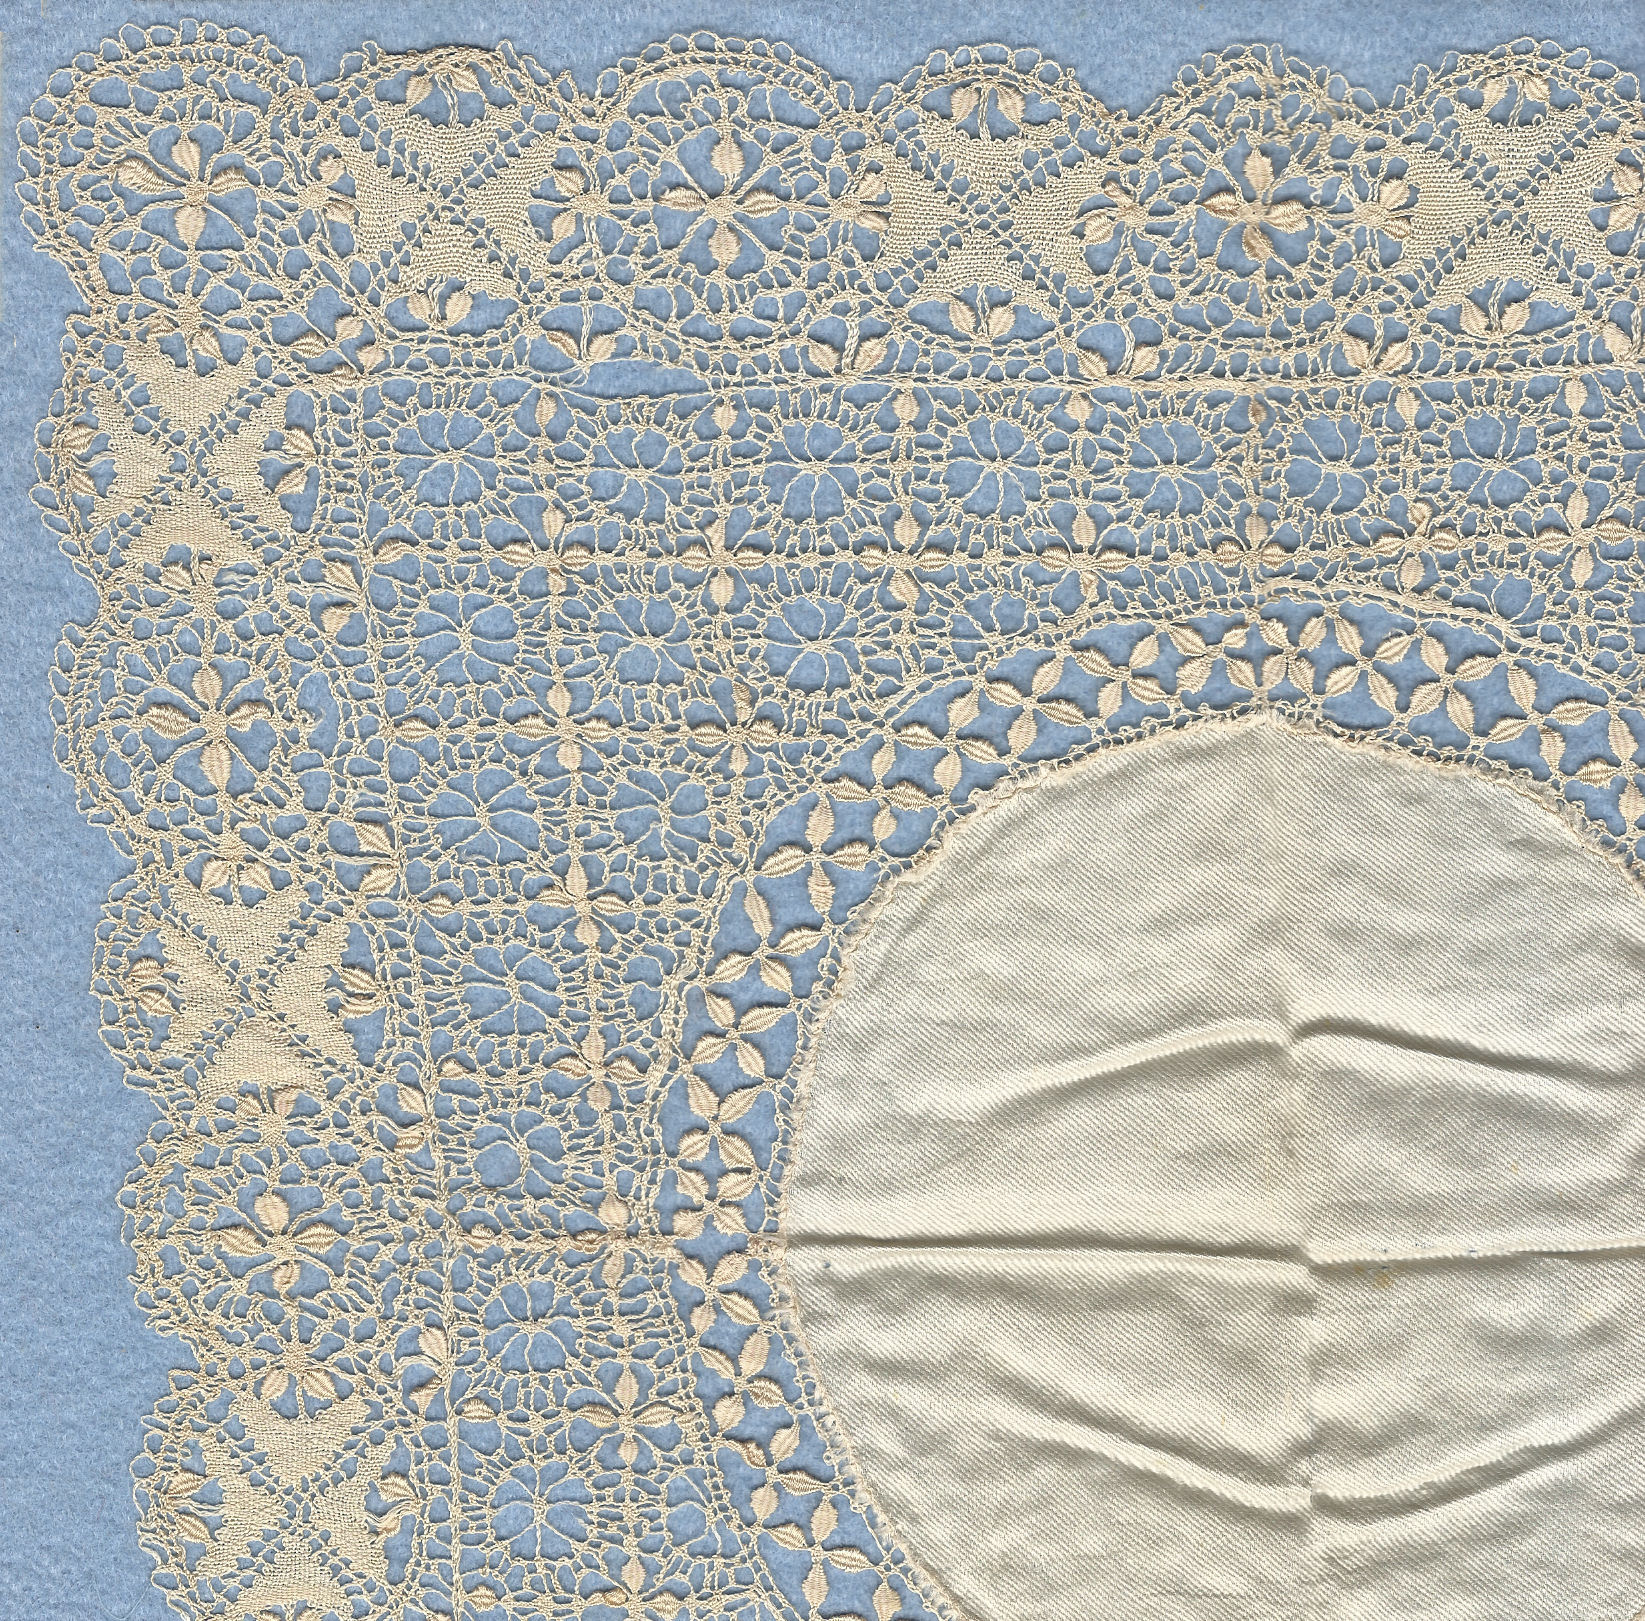 Maltese lace By Joedkins (Own work) Retrieved from Wikimedia Commons